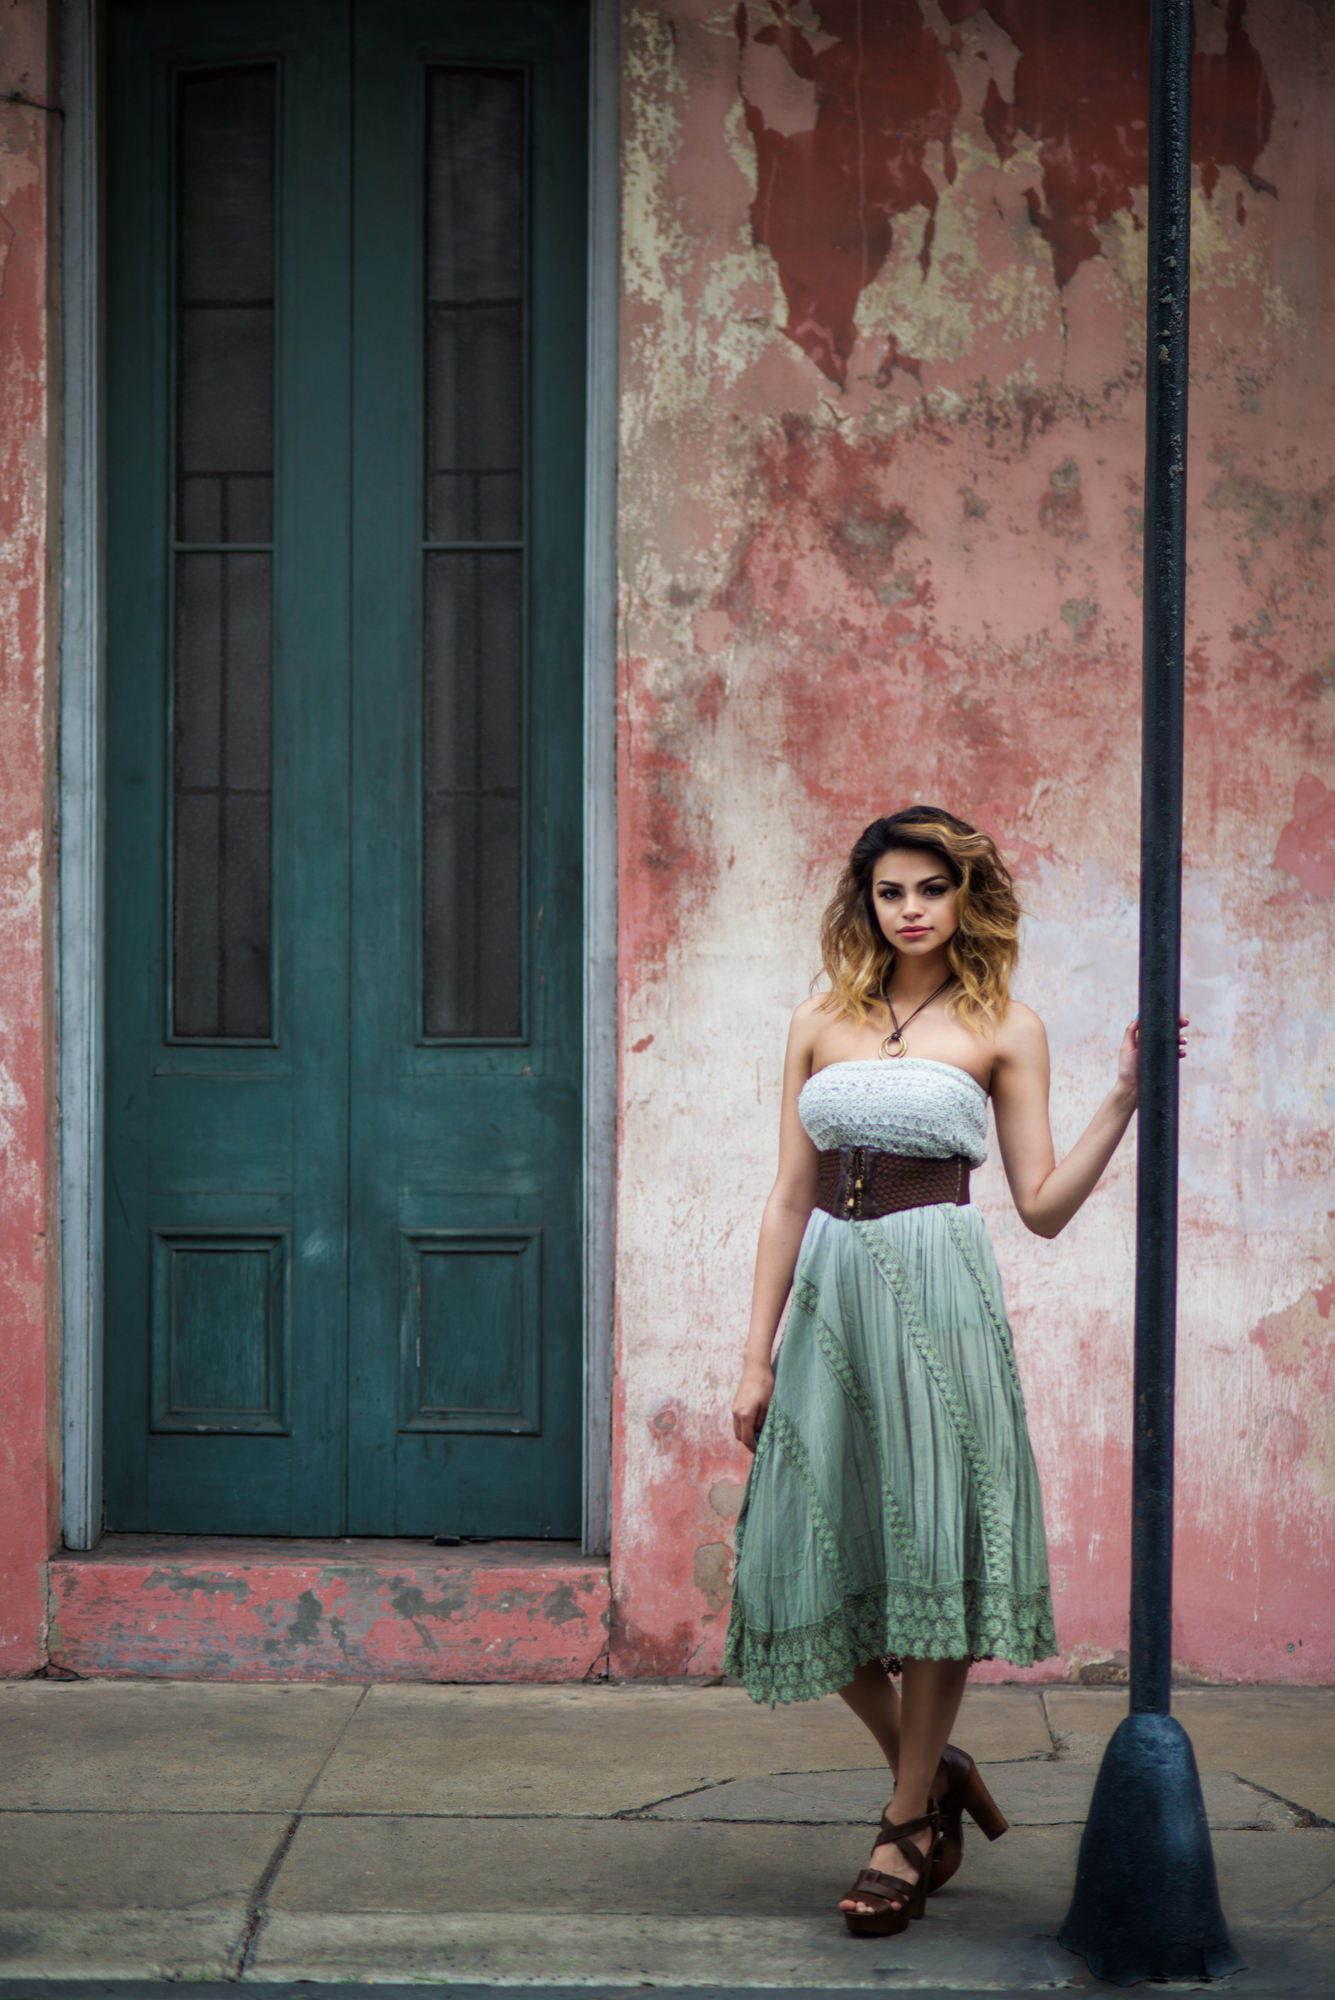 Modeling Porftfolio Building Shoot in New Orleans next to Textured Wall